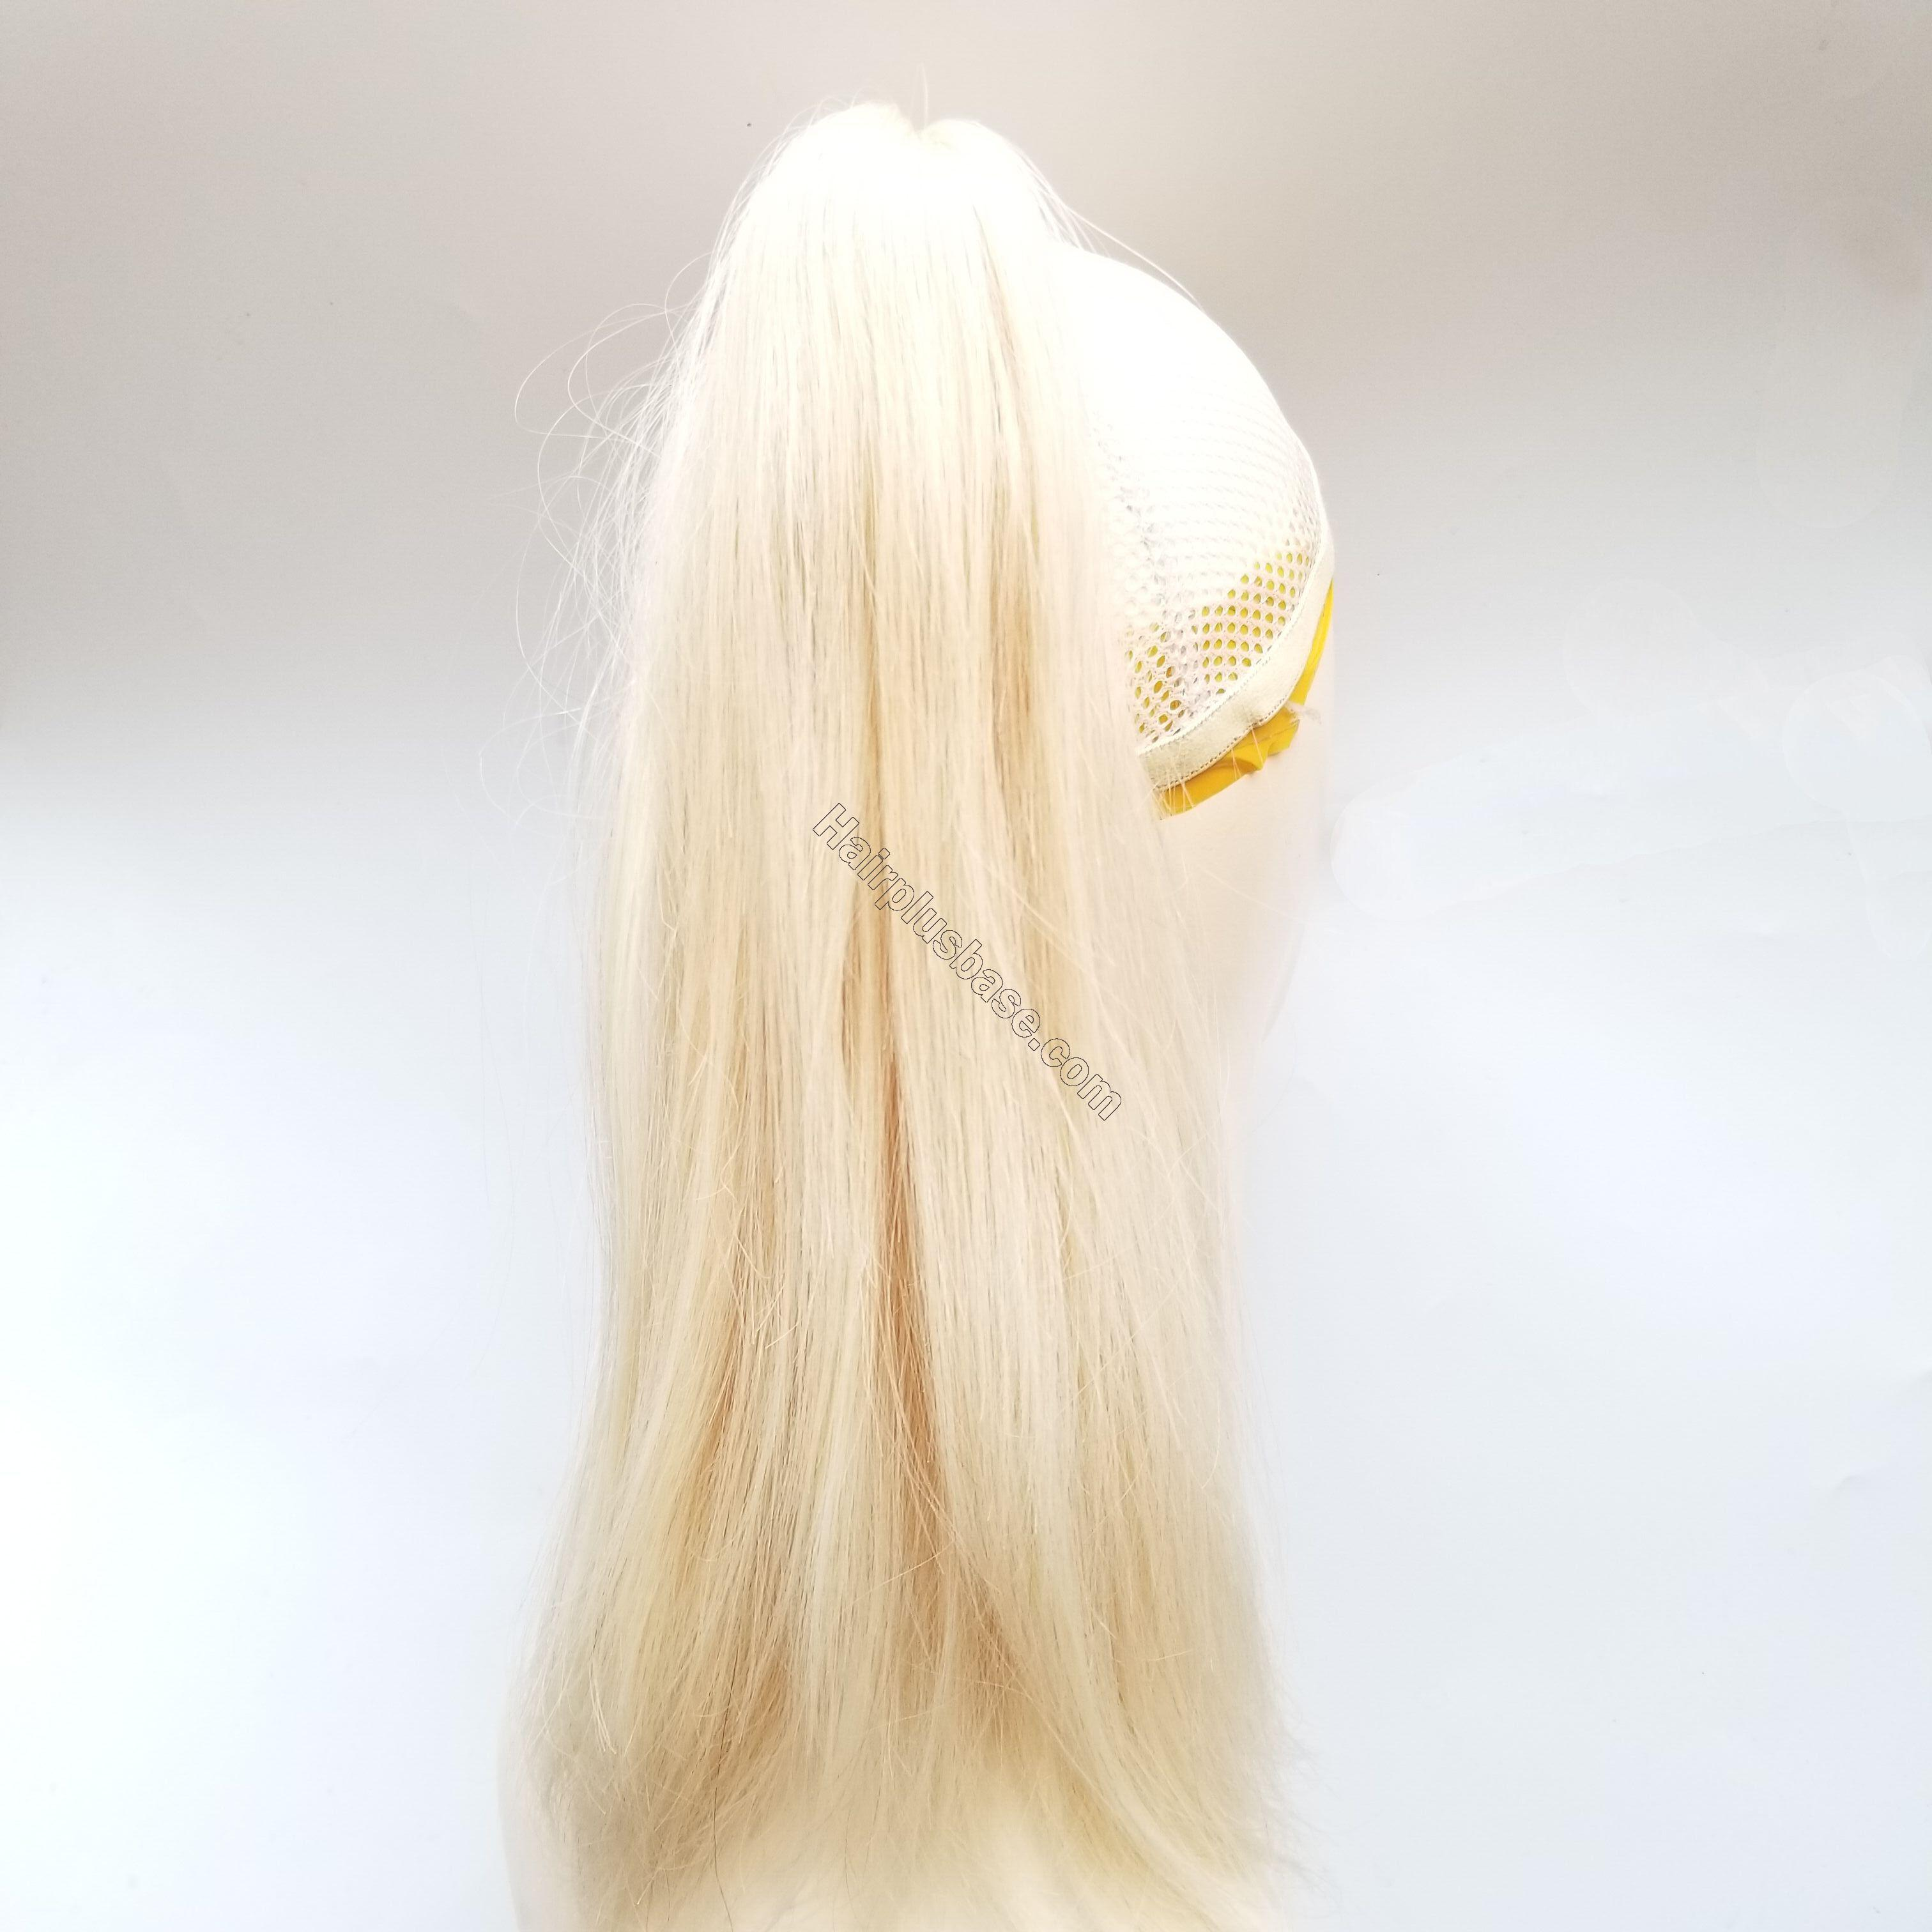 8 - 30 Inch Claw Ponytail Extension Human Hair #613 Bleach Blonde 4